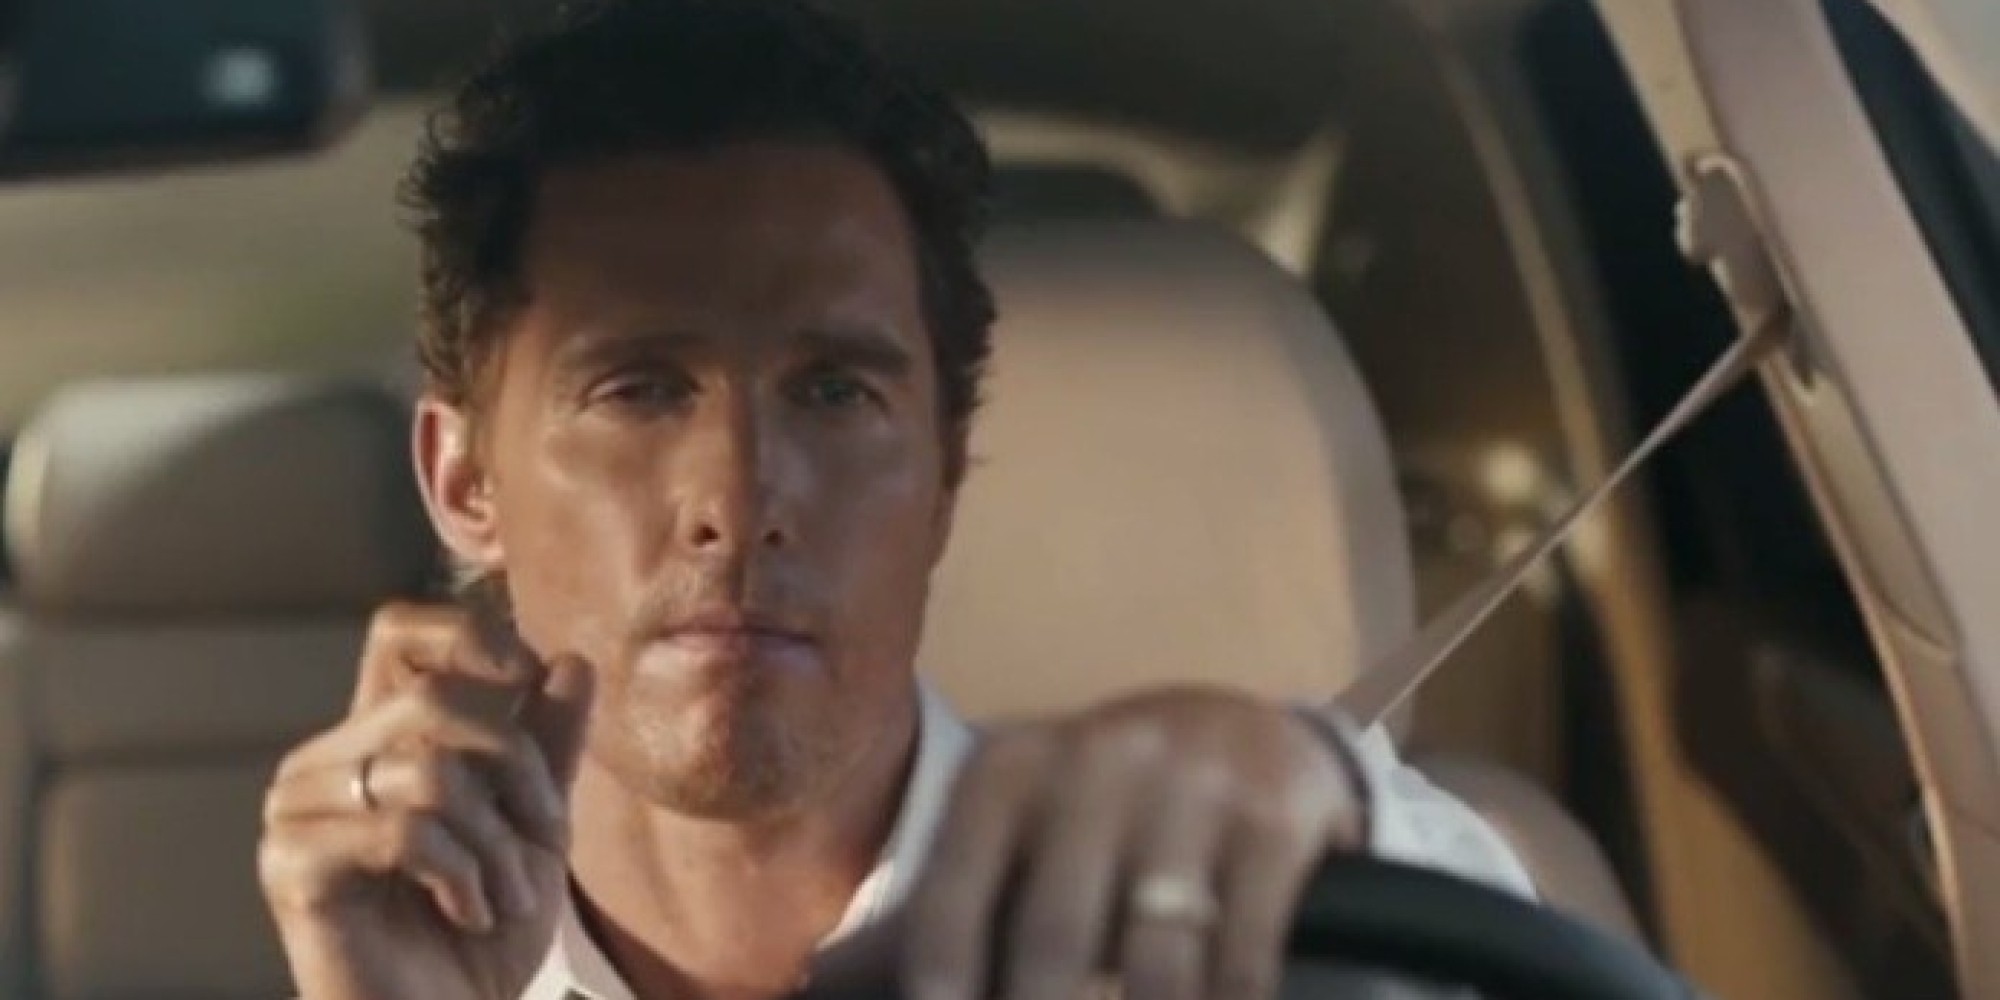 matthew mcconaughey 39 s lincoln ad just got a 39 true detective 39 remix huffpost. Black Bedroom Furniture Sets. Home Design Ideas